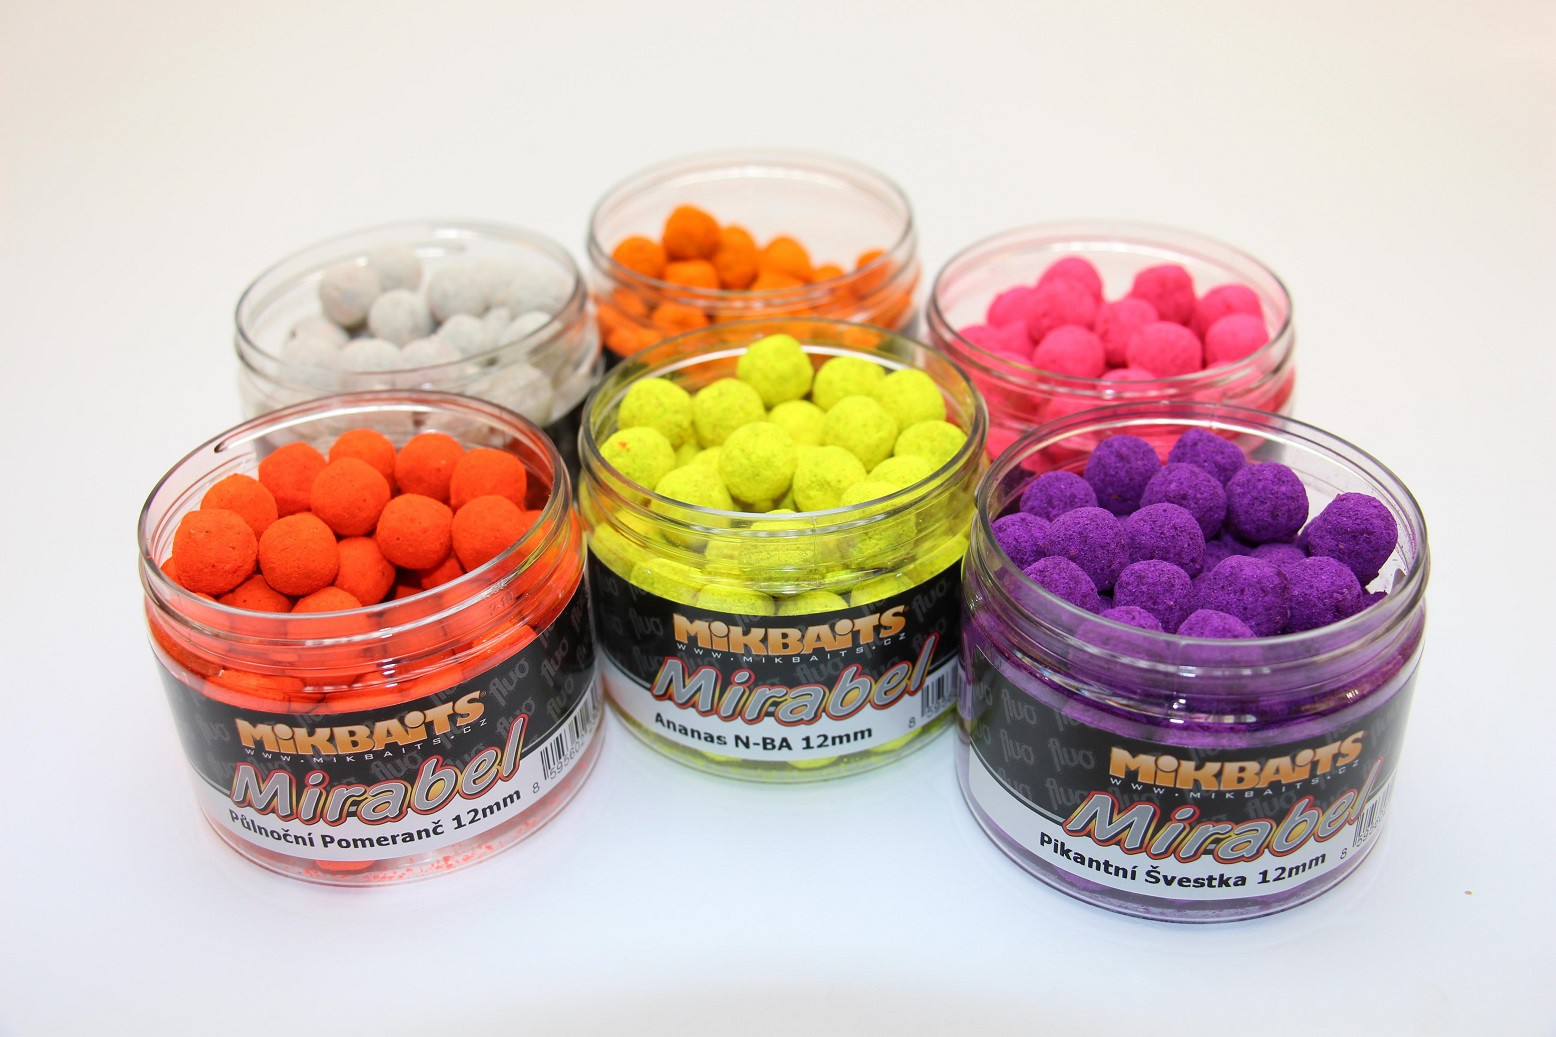 MIKBAITS Mirabel Fluo boilie 150ml - JAHODA 12mm